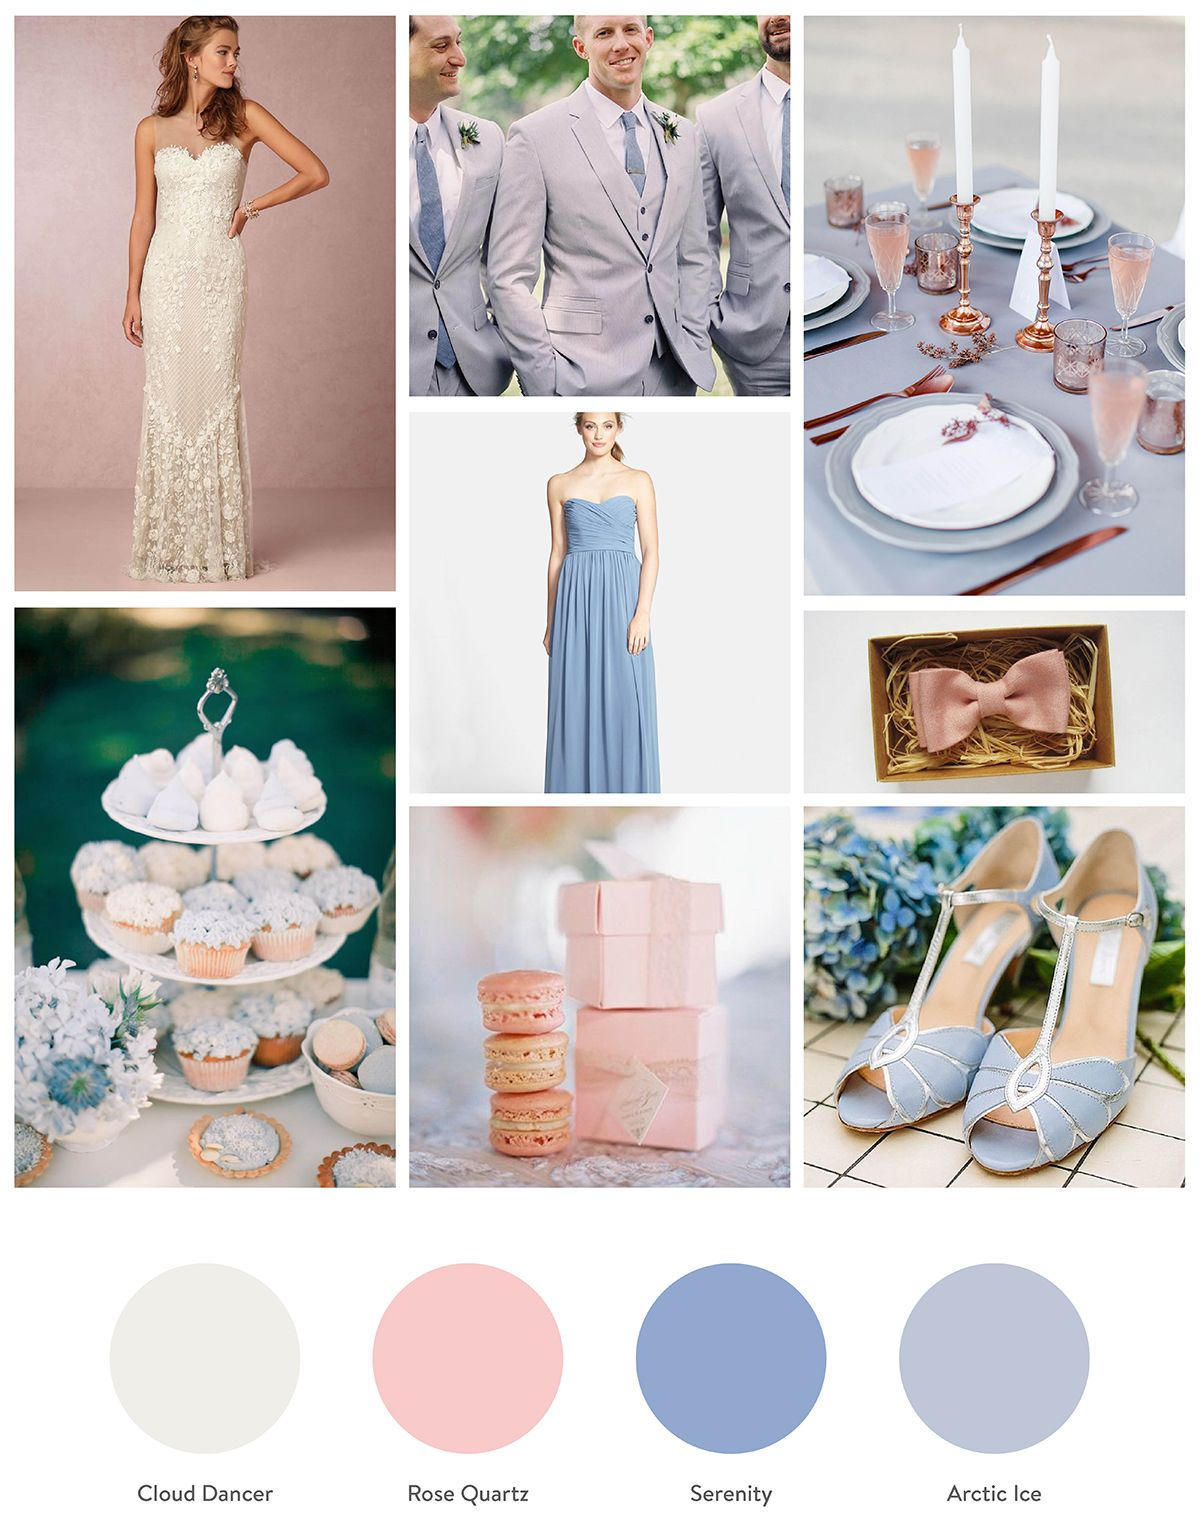 Hochzeit Farben Rose Quartz And Serenity Rose Quartz And Serenity Pantone